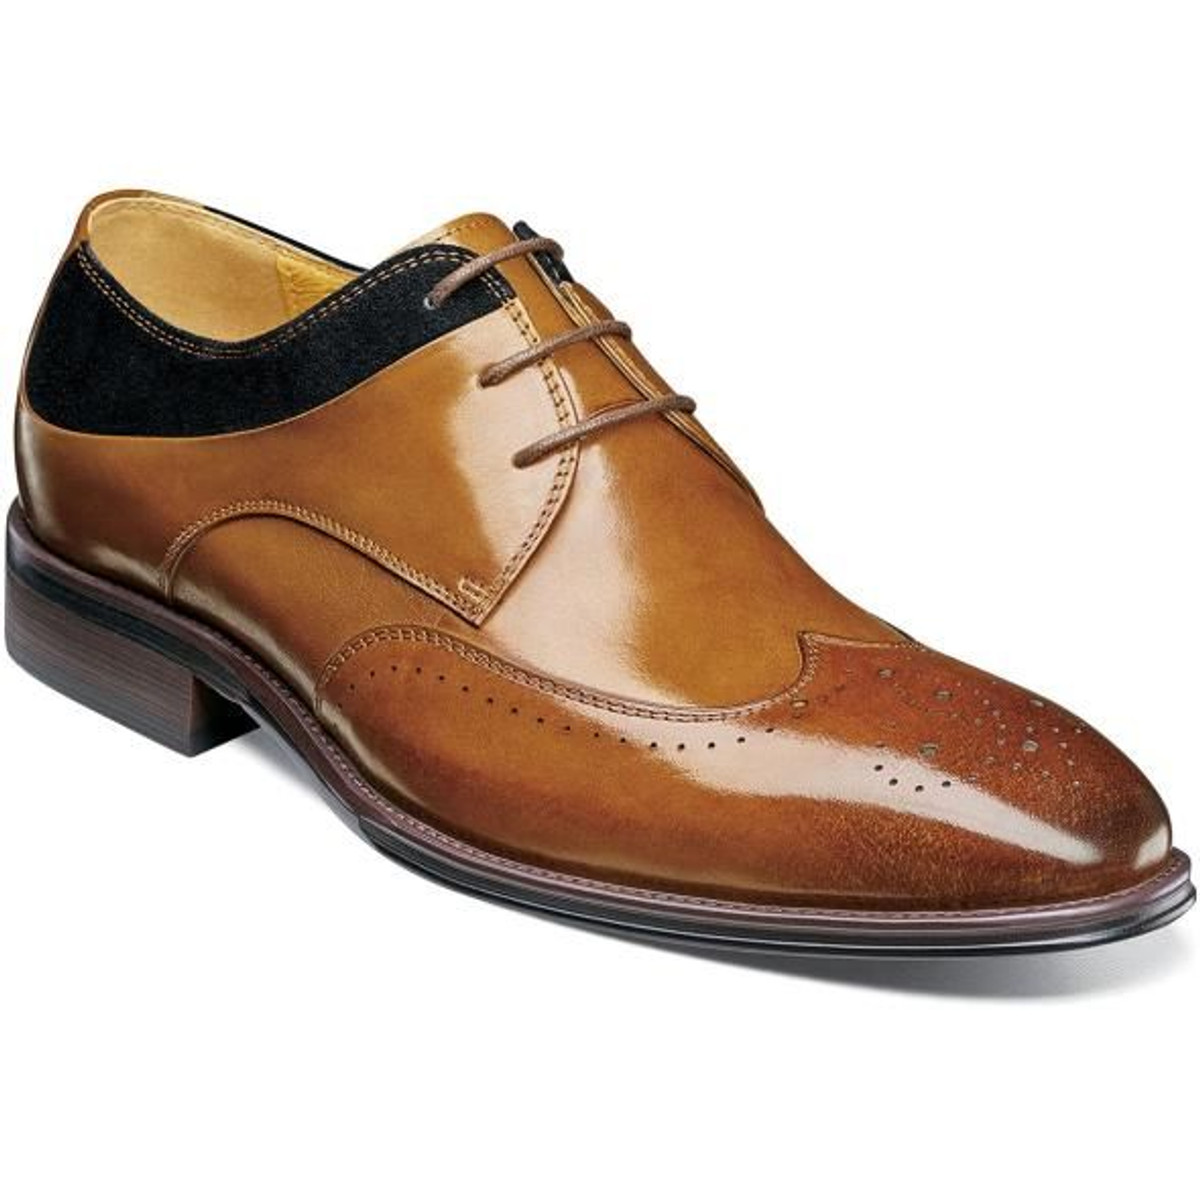 Stacy Adams Dress Shoes Tan Black Leather Wingtip 25314-238 IS